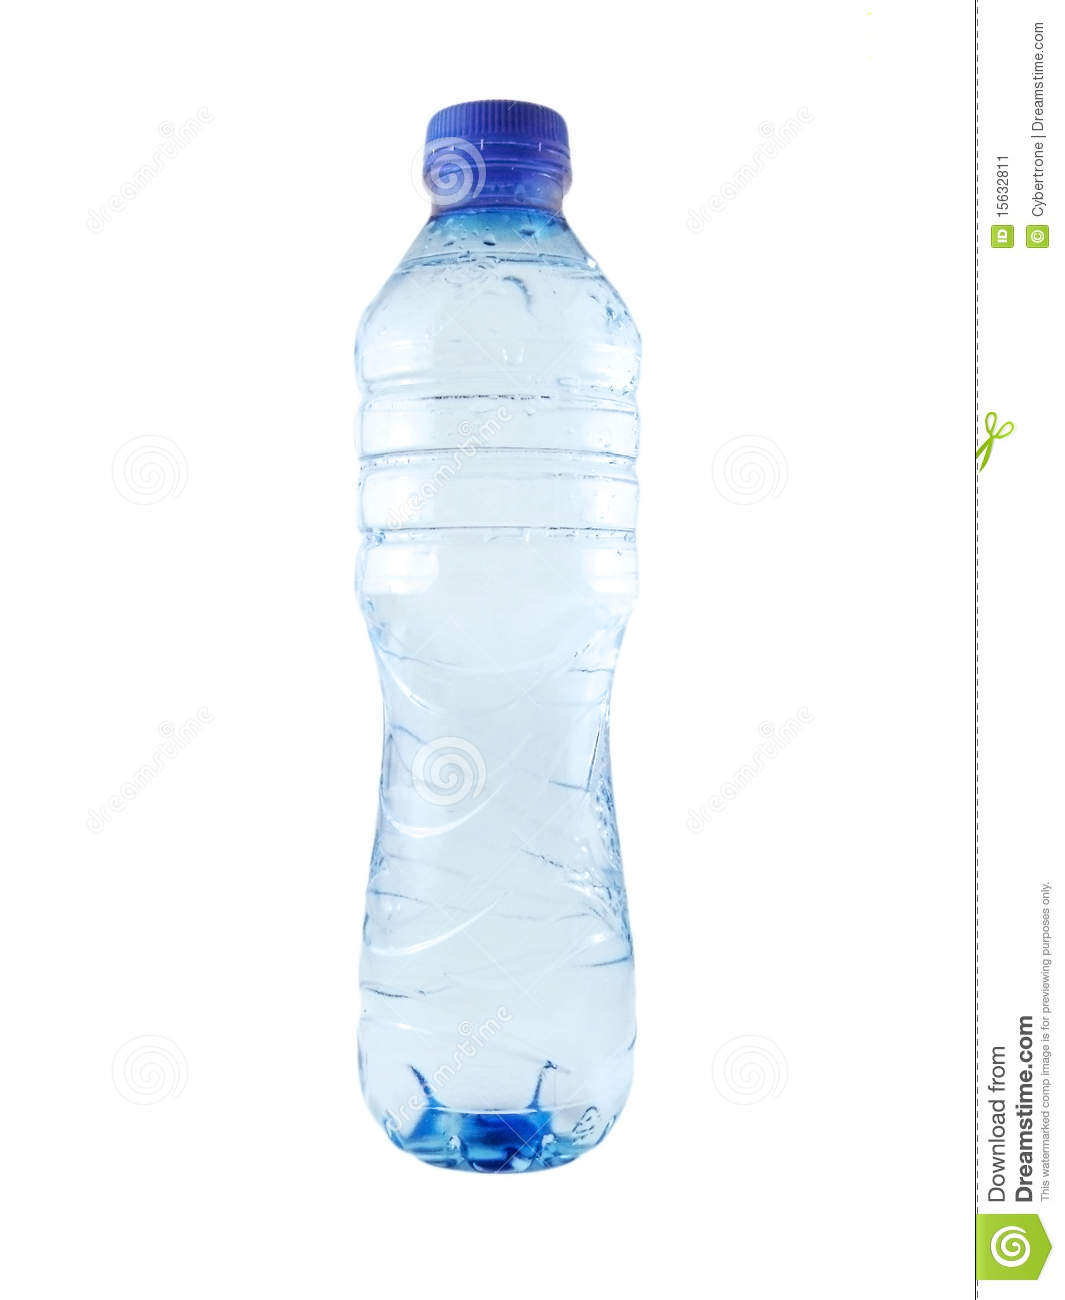 Bottle of mineral water stock image. Image of clean ...